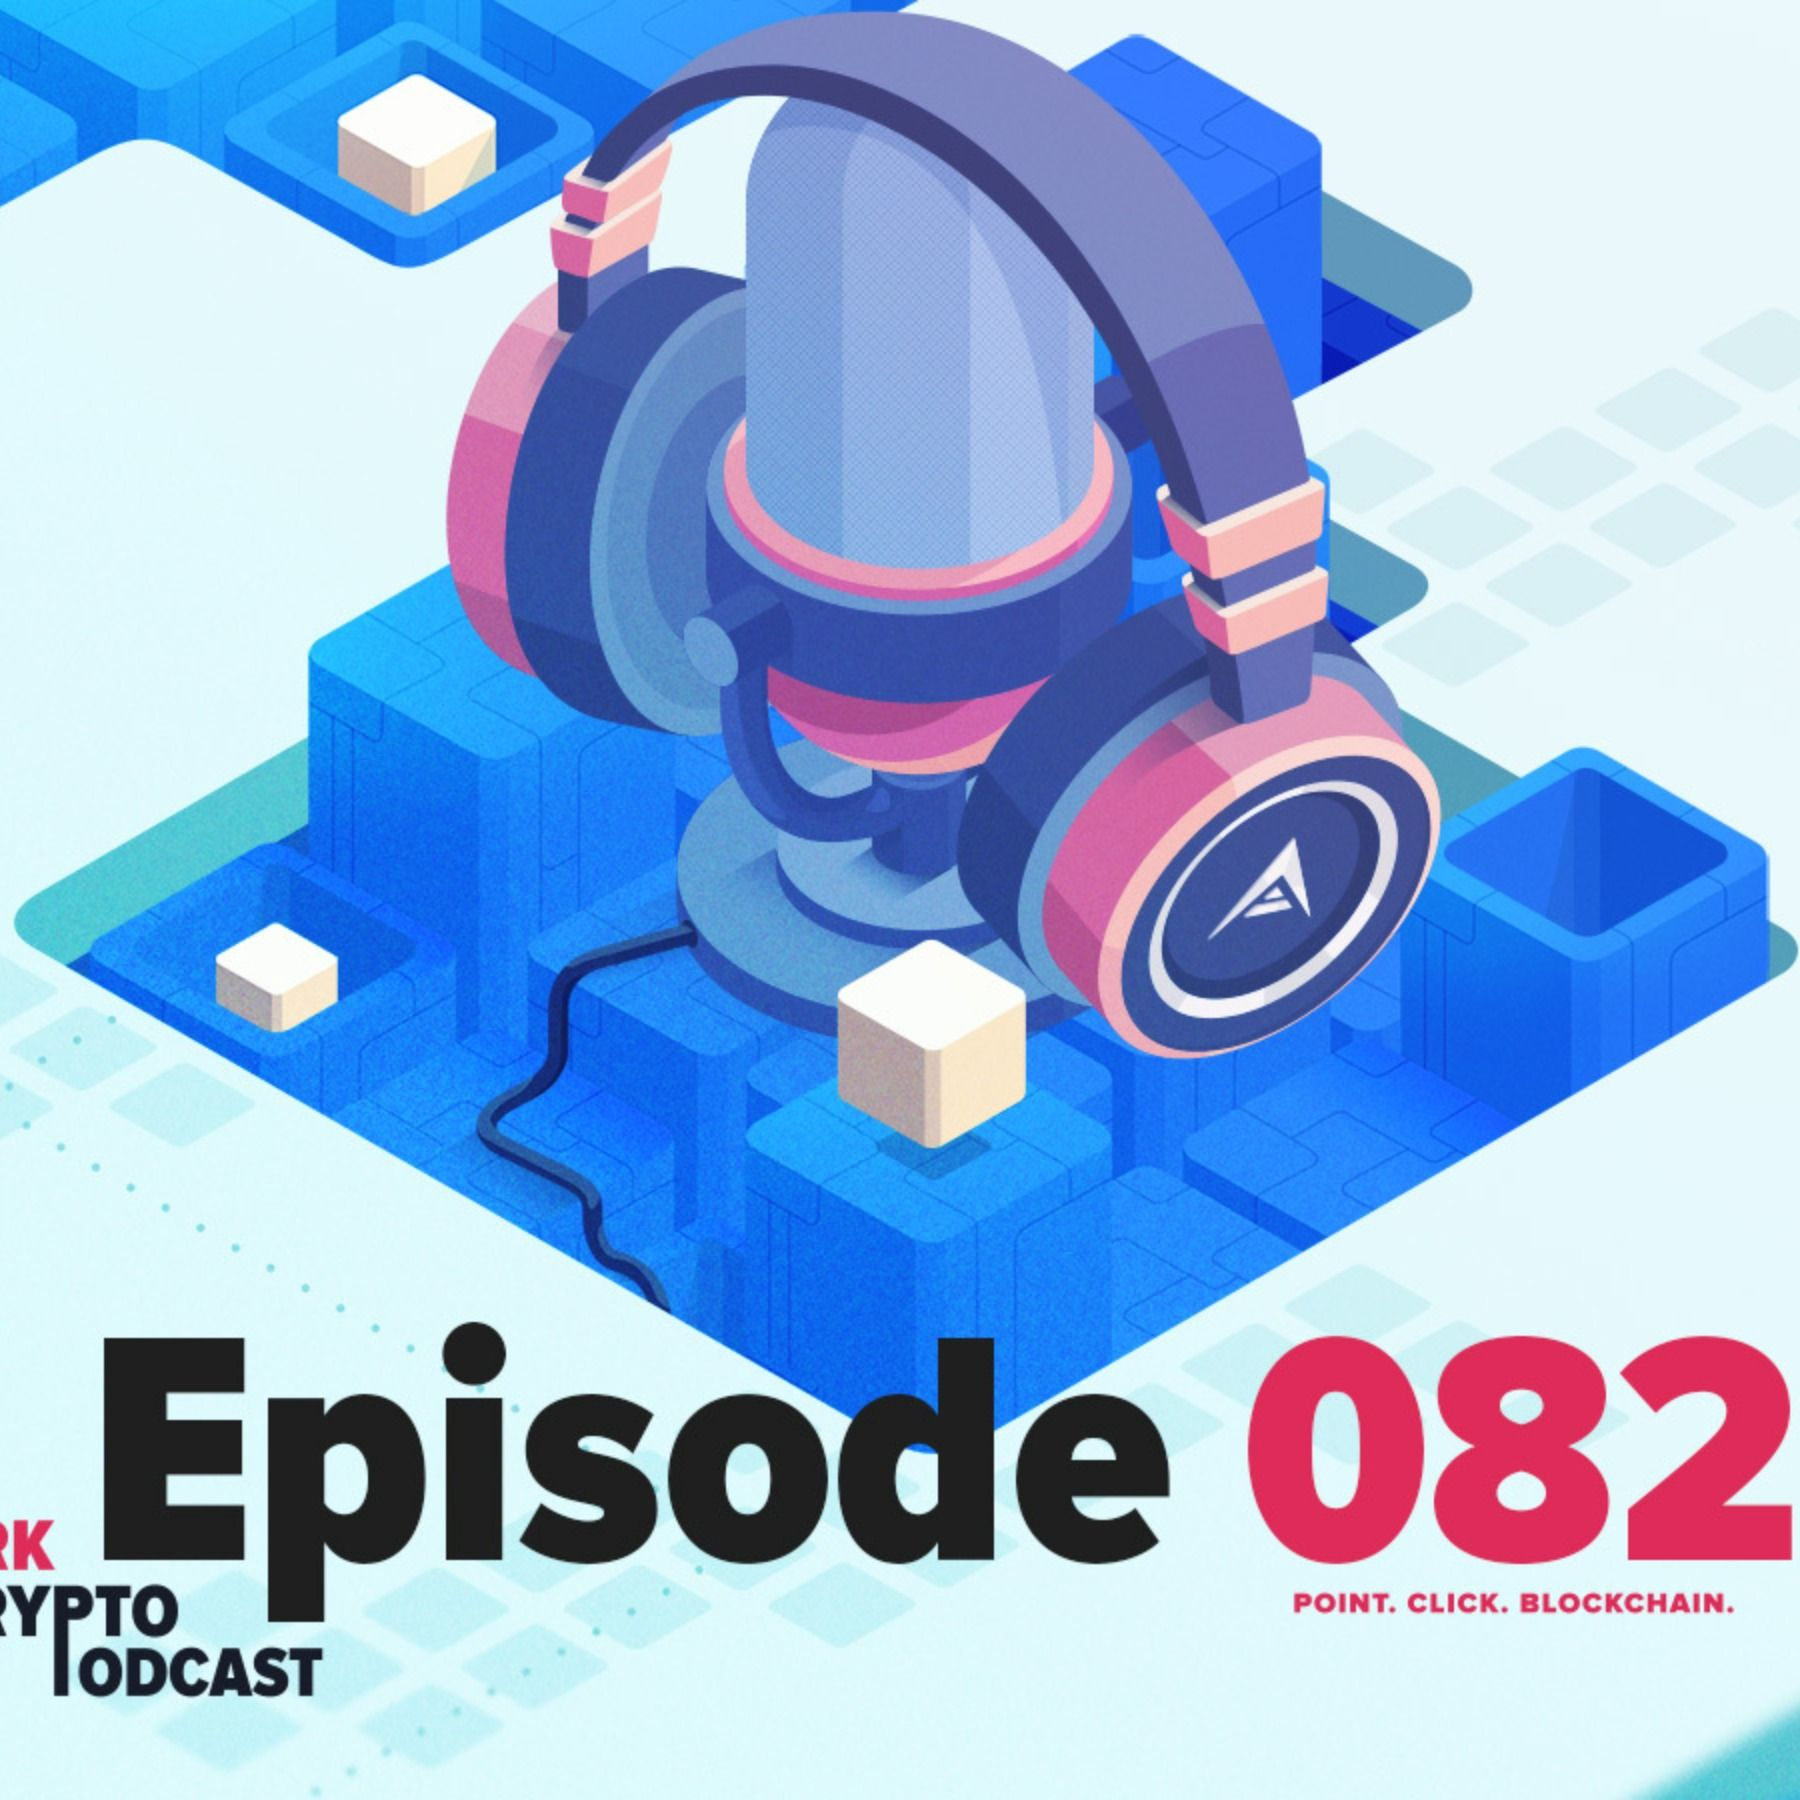 ARK Crypto Podcast #082 - ARK.io Monthly Update June 2020